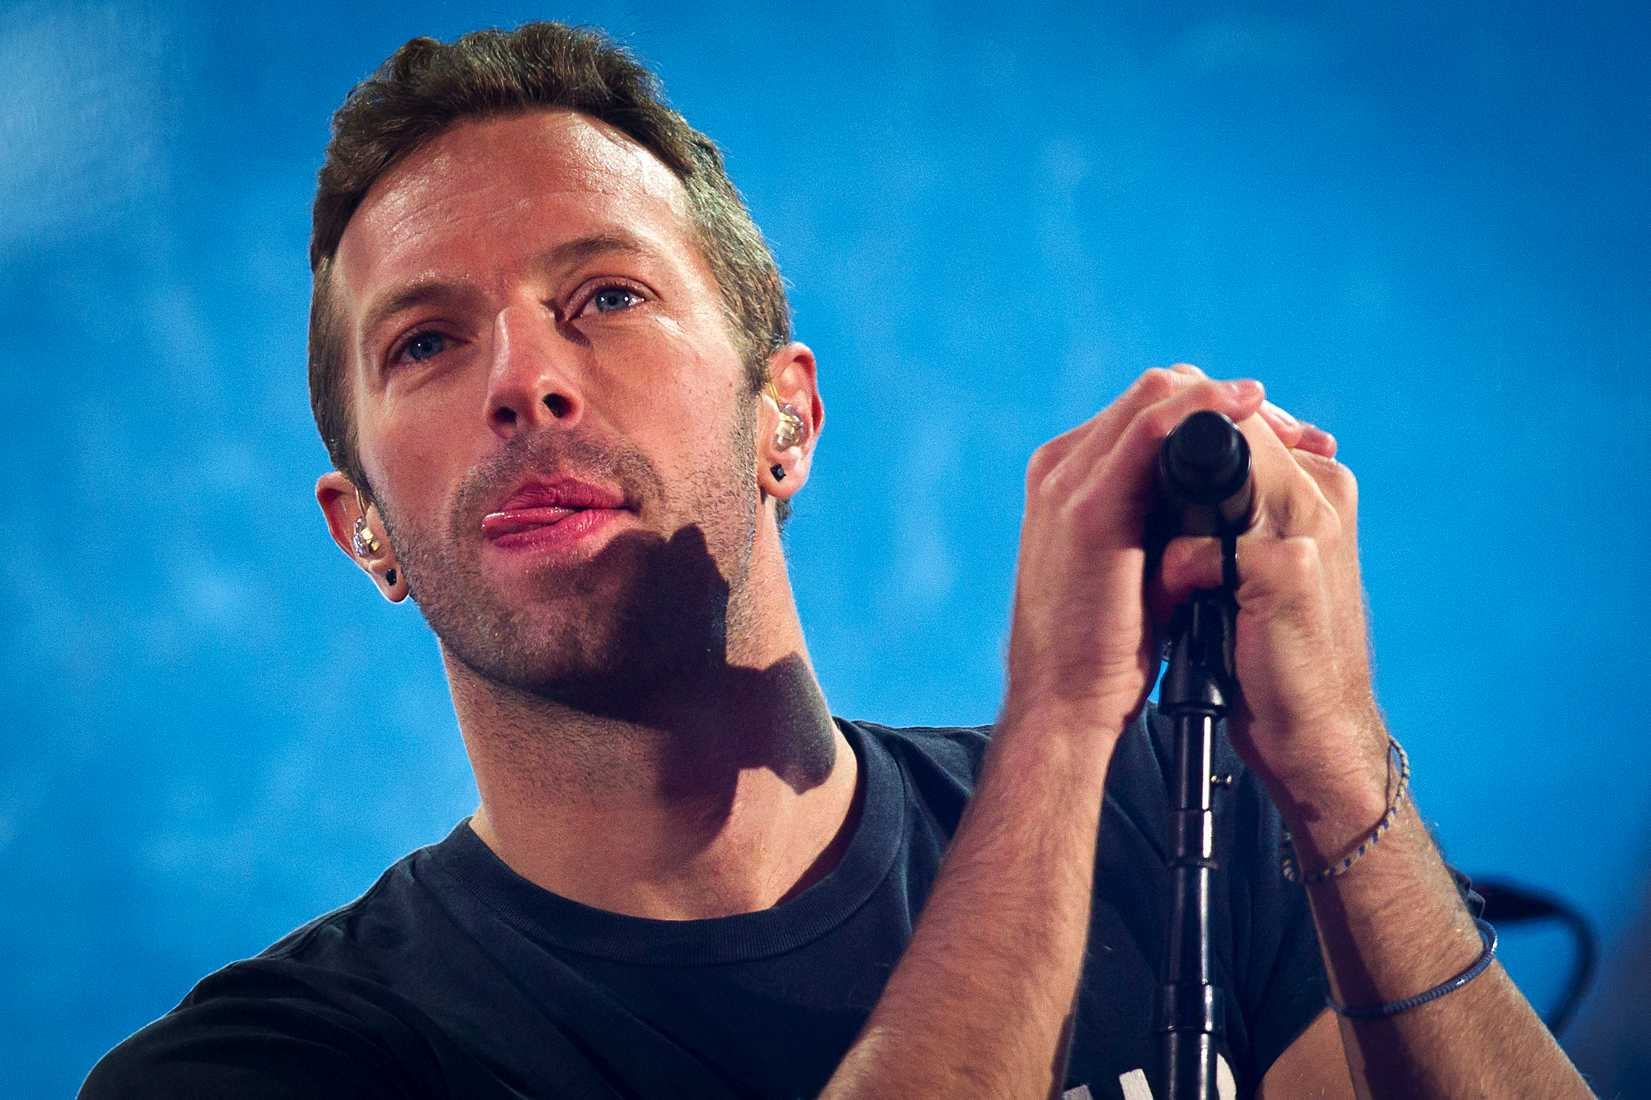 Chris Martin performs with U2 during a surprise concert in support of World AIDS Day in Times Square in New York City on Dec. 1, 2014